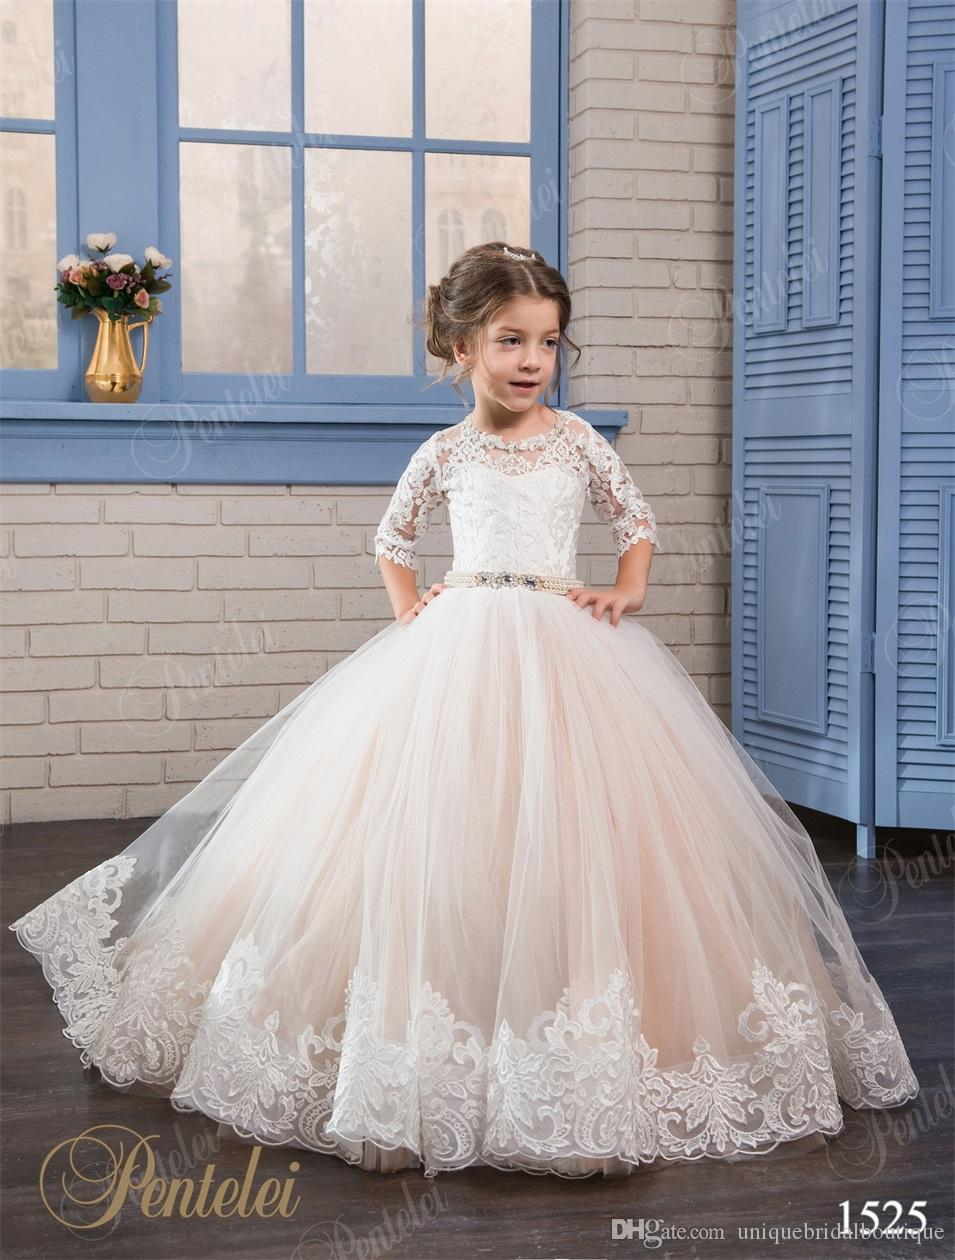 Cheap Flower Girls Dresses 2017 Pentelei with 3/4 Long Sleeves and Lace-Up Back Appliques Tulle Ballgown Little Girls Gowns for Party Prom